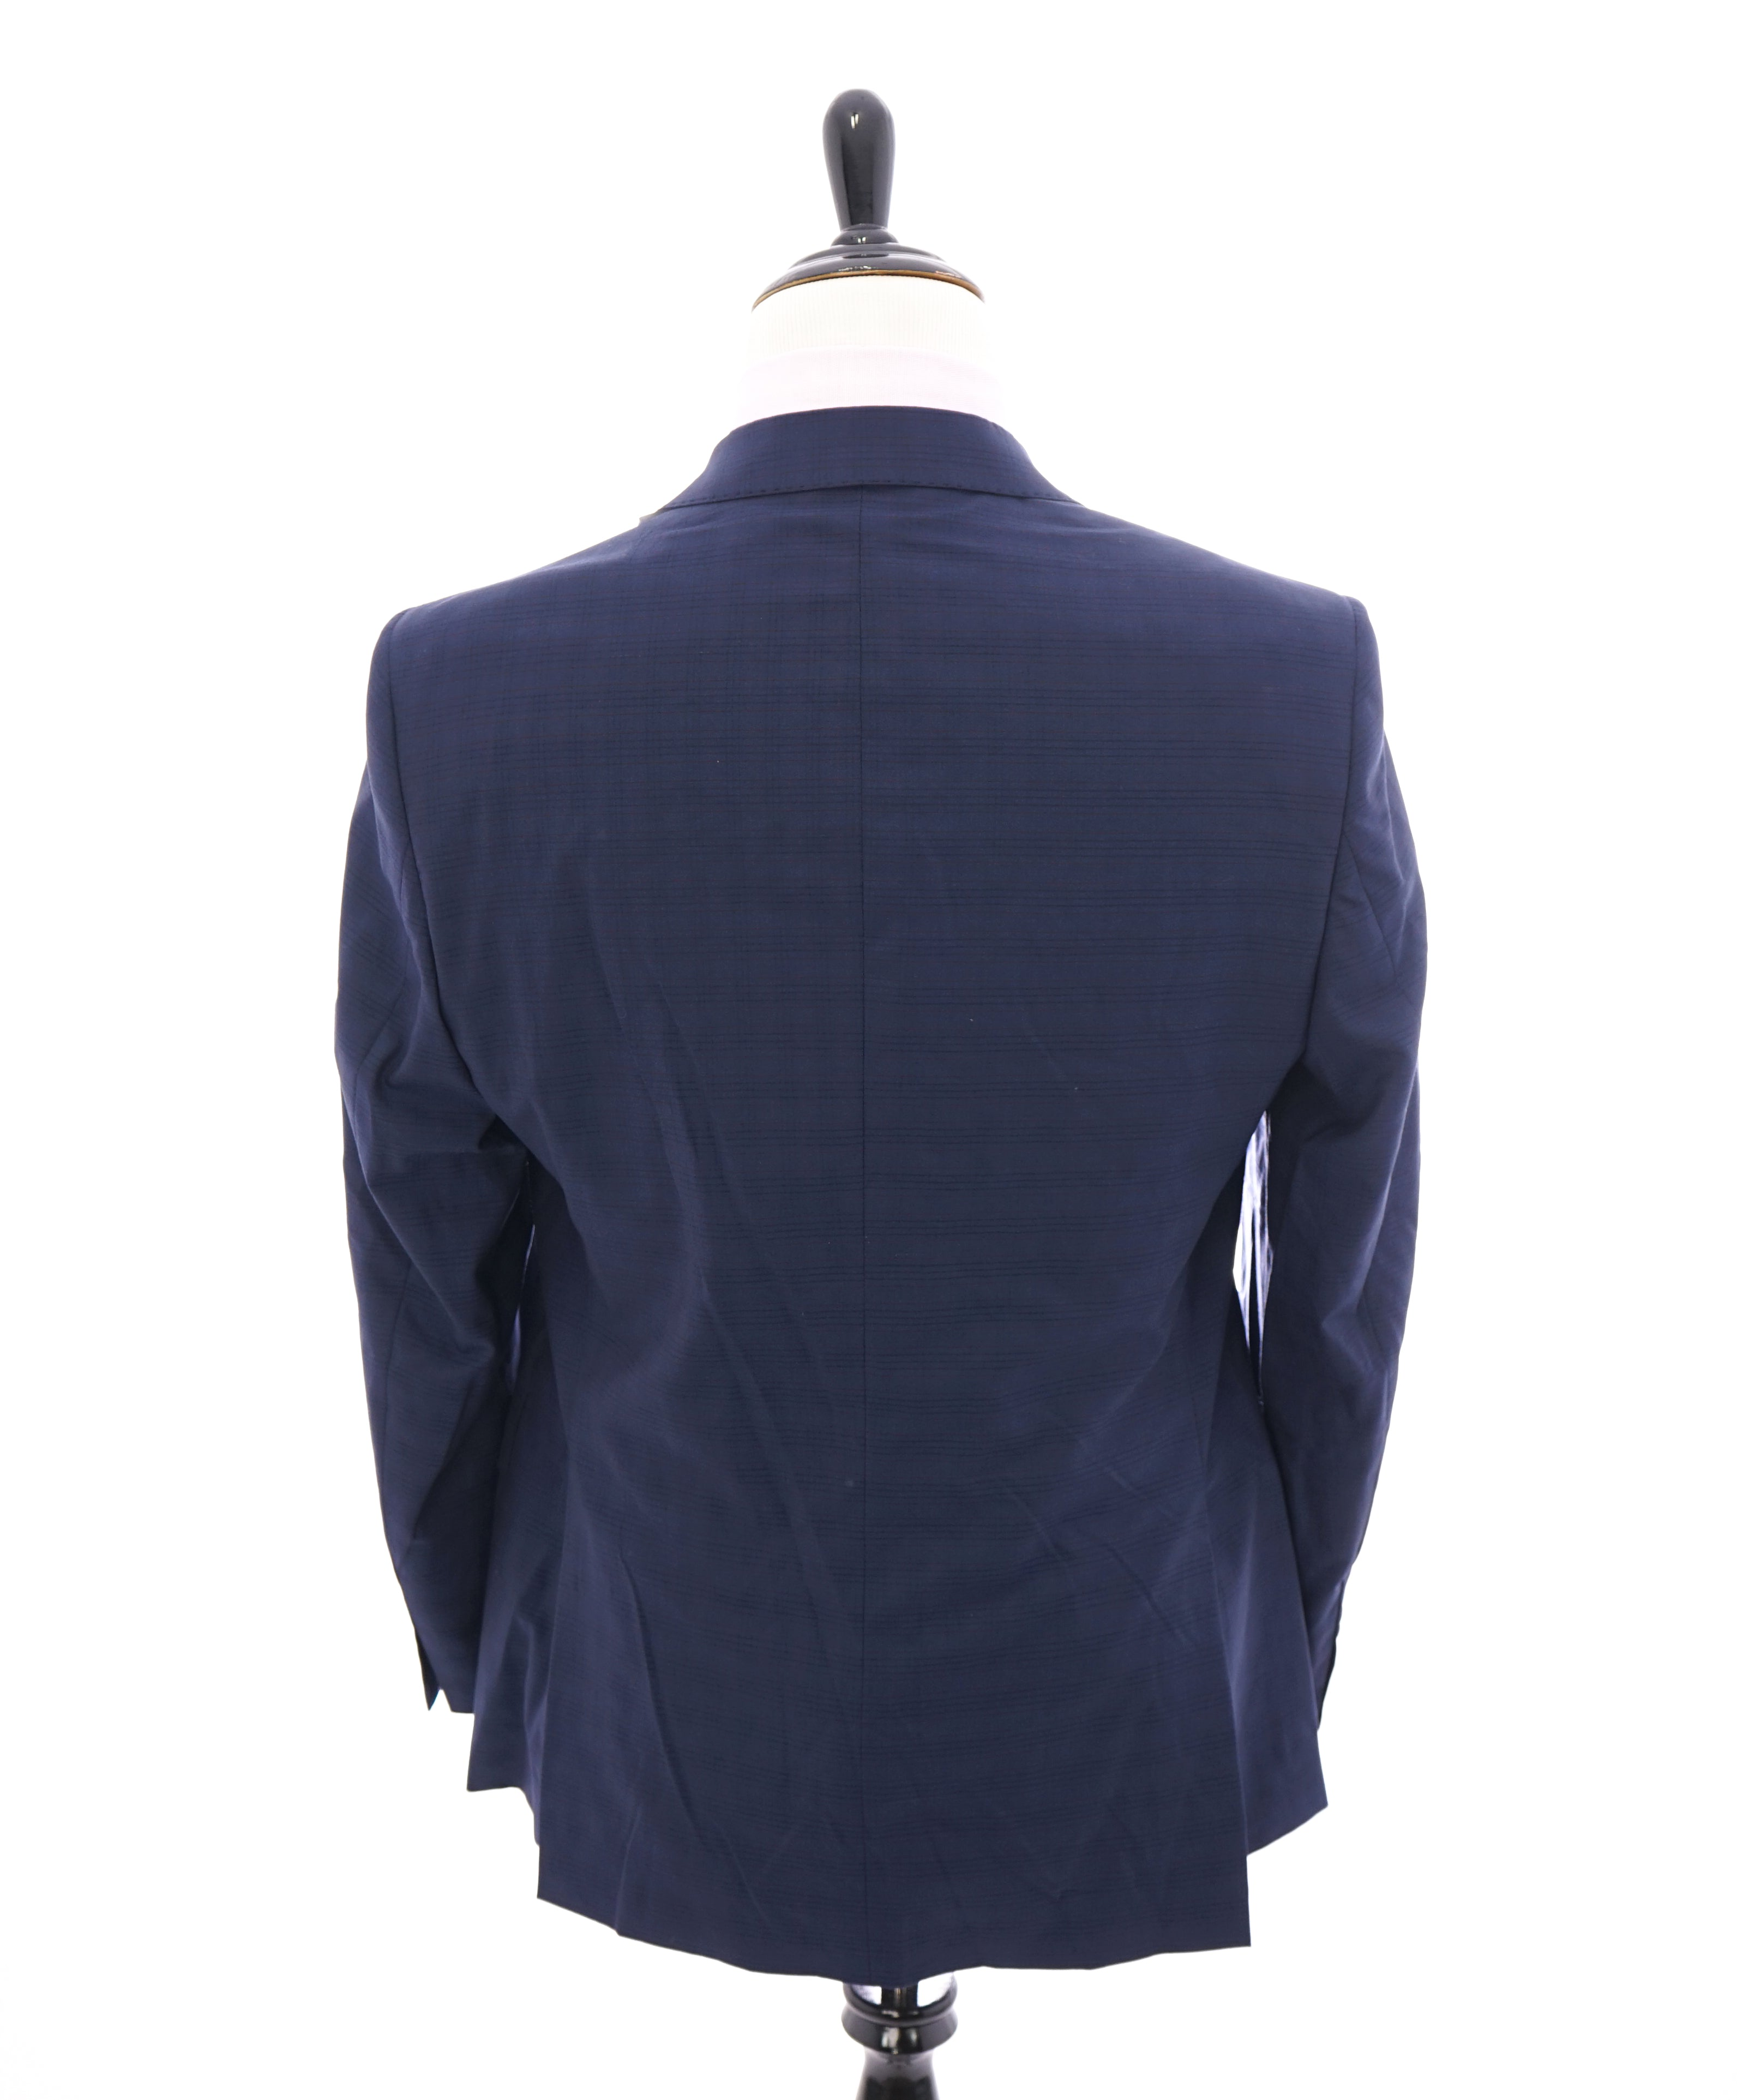 SAKS FIFTH AVENUE / ERMENEGILDO ZEGNA- Slim Medium Blue/Red Check Wool Blazer- 42R